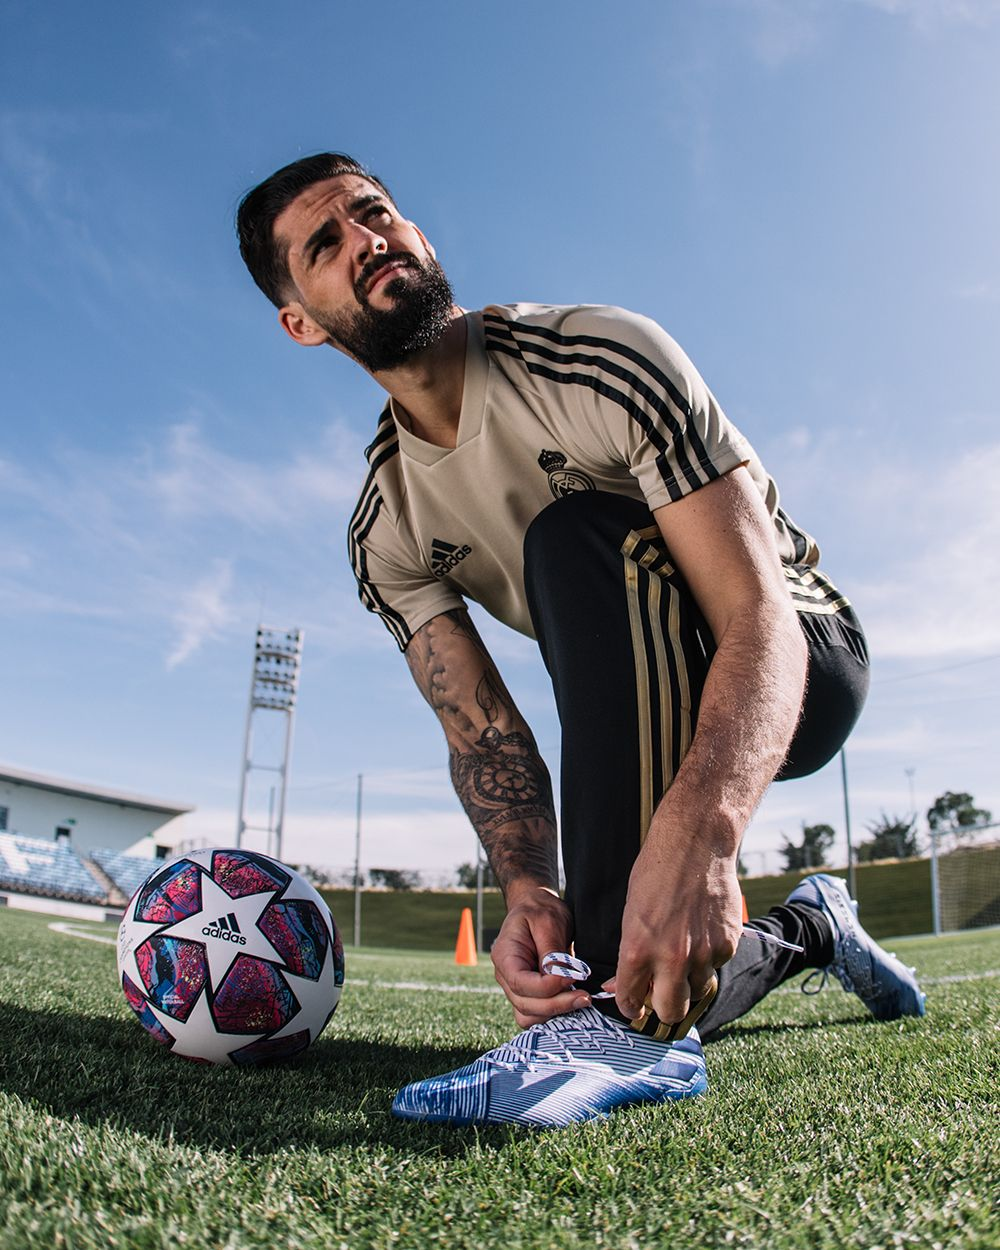 Adidas Football Soccer Realmadrid Ucl Championsleague Isco